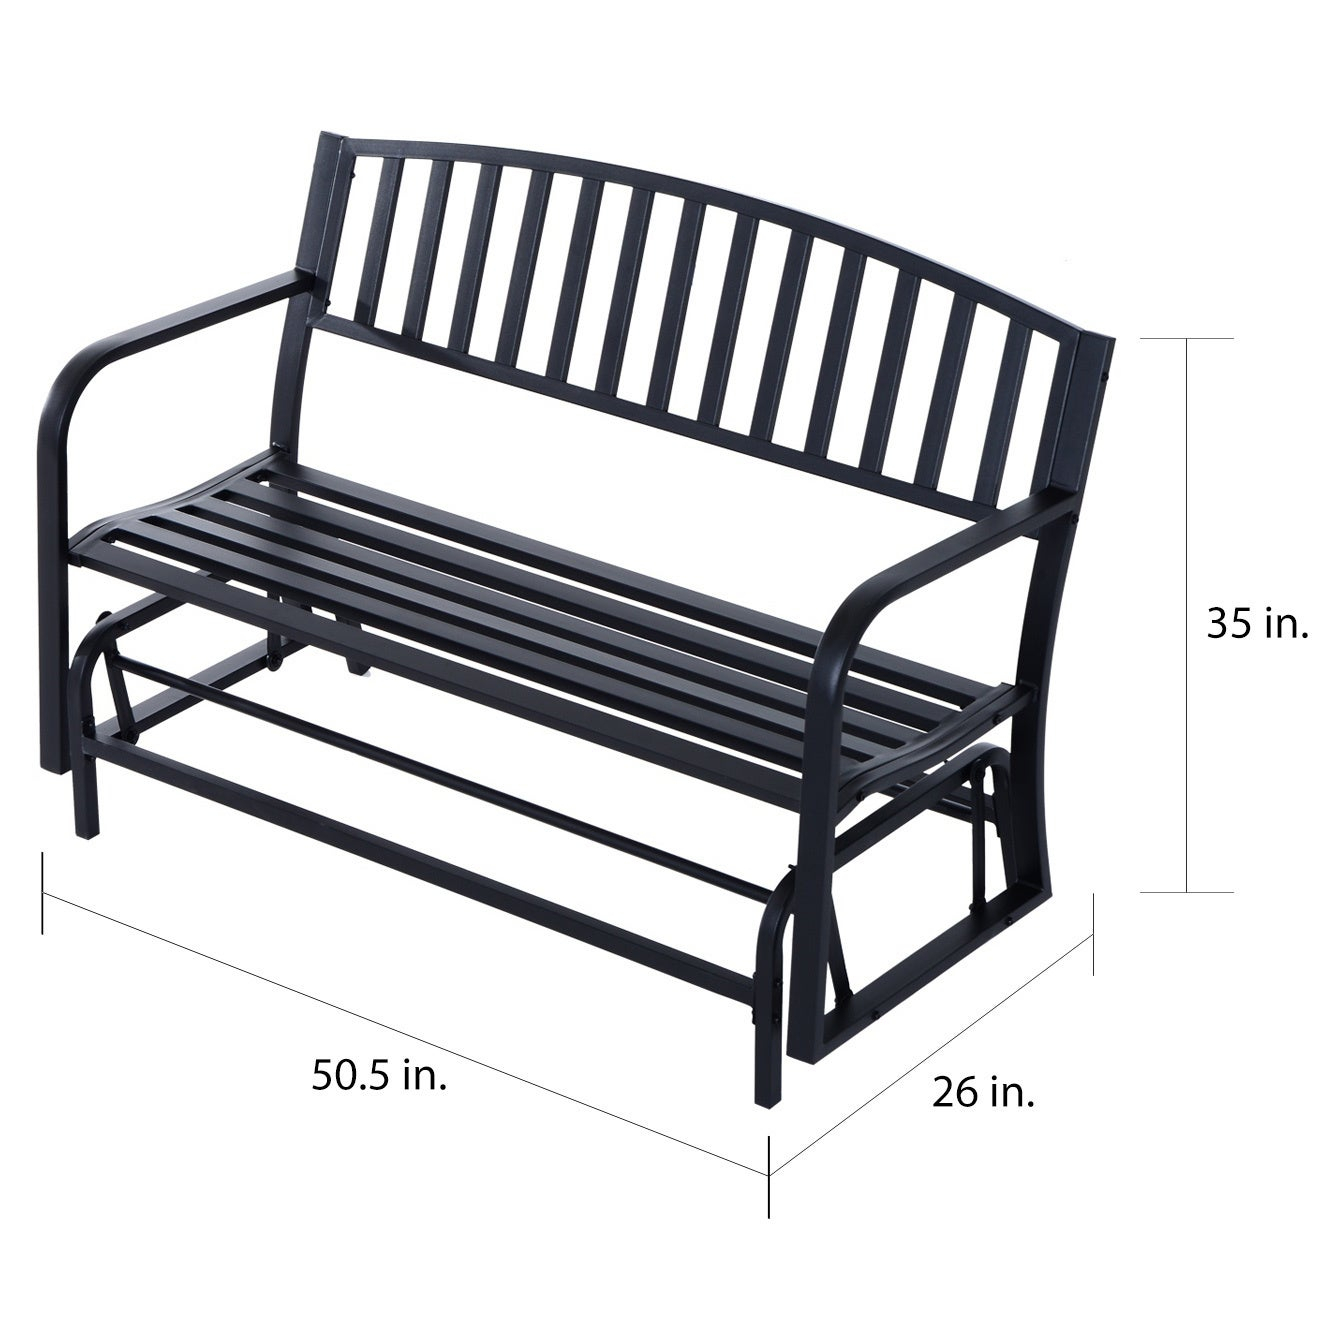 Outsunny 50 Inch Outdoor Steel Patio Swing Glider Bench – Black With Regard To Outdoor Swing Glider Chairs With Powder Coated Steel Frame (View 9 of 25)